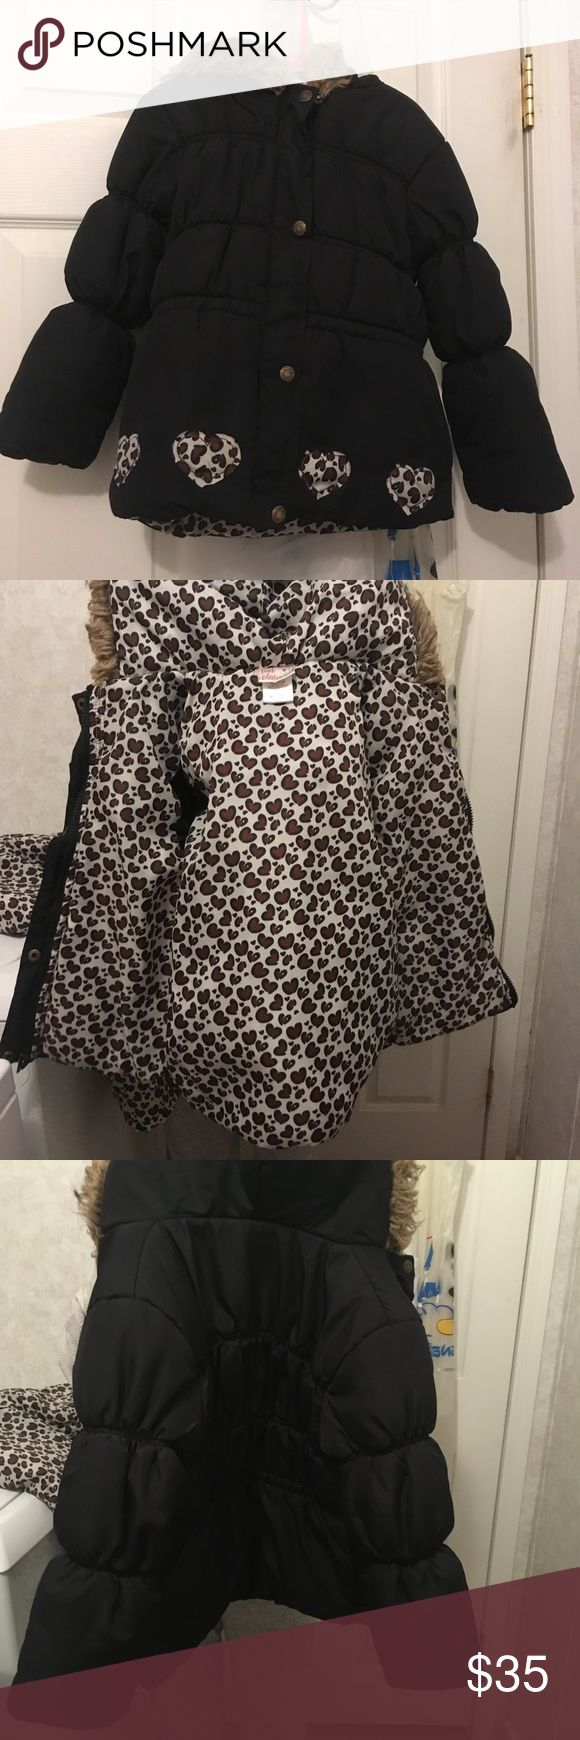 Kids snow bibs with coat. Both in great condition other than the stitching came out on one side, but it has been stitched back up! Shown in the last picture. Bought from pebbles. Pink Platinum Jackets & Coats